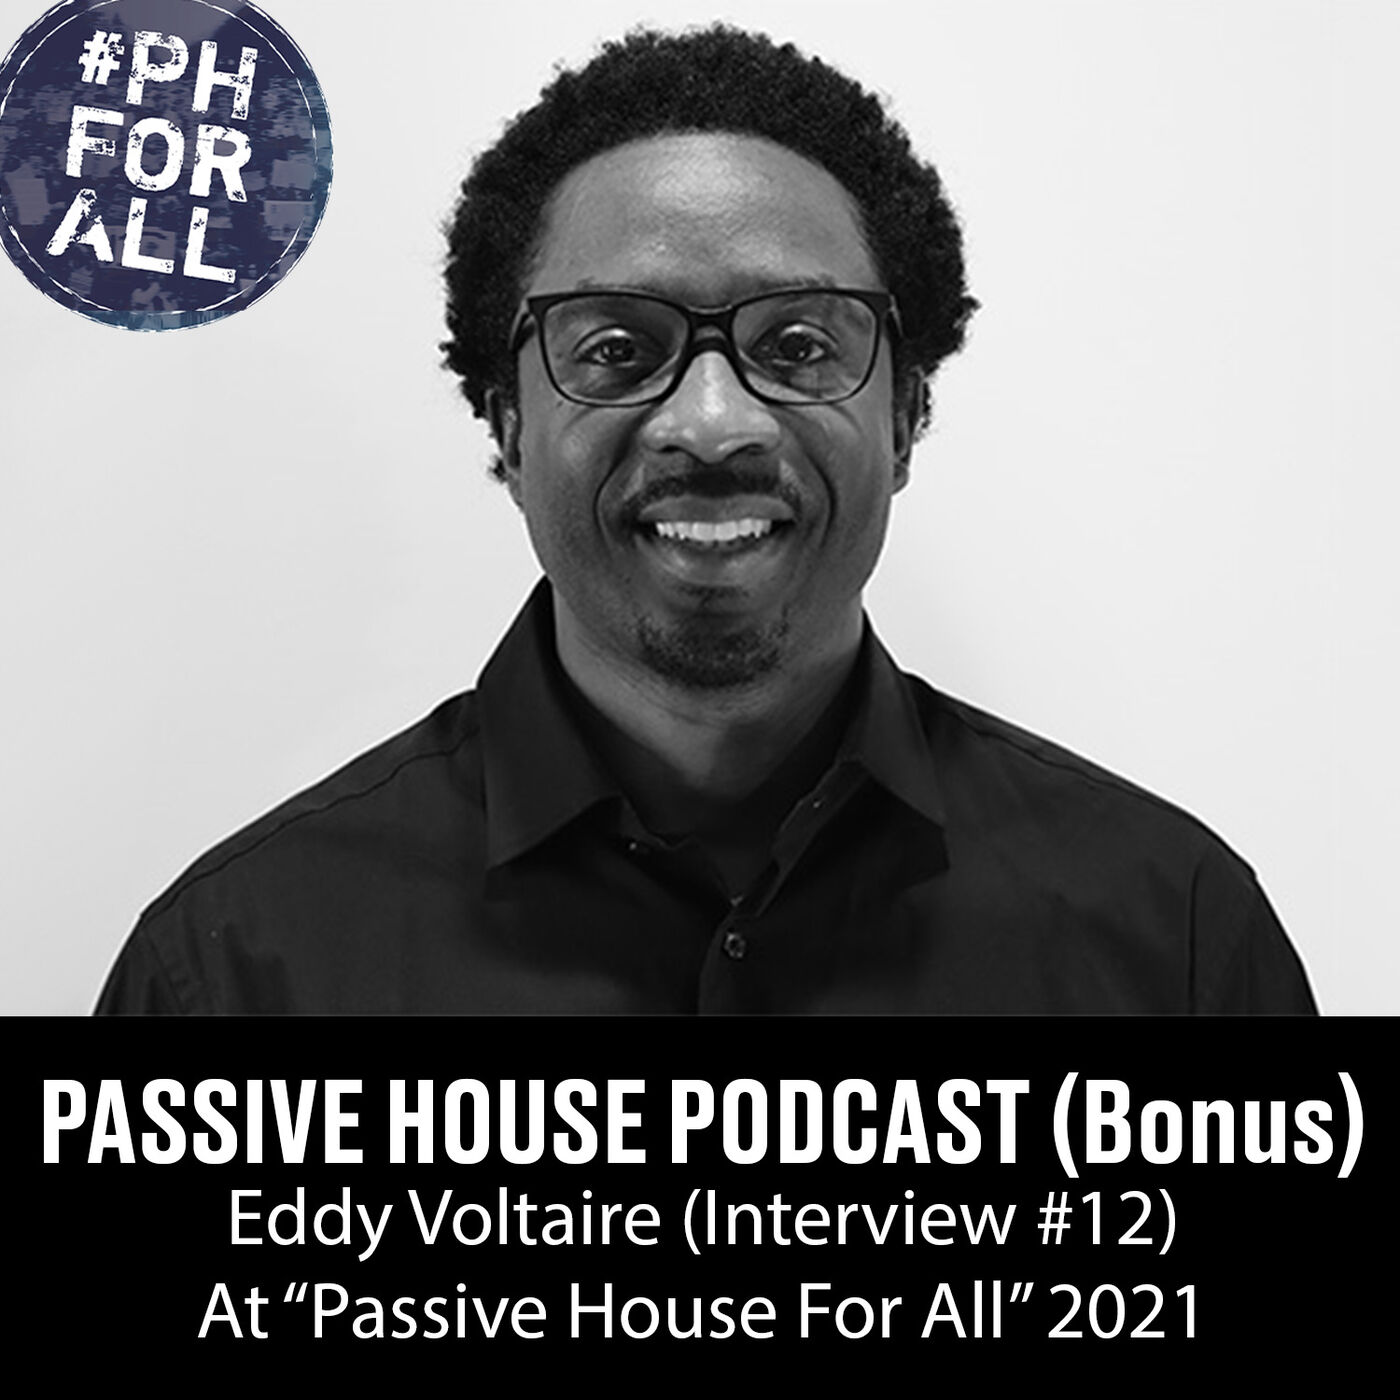 Bonus: Eddy Voltaire at Passive House For All Conference (Interview #12)